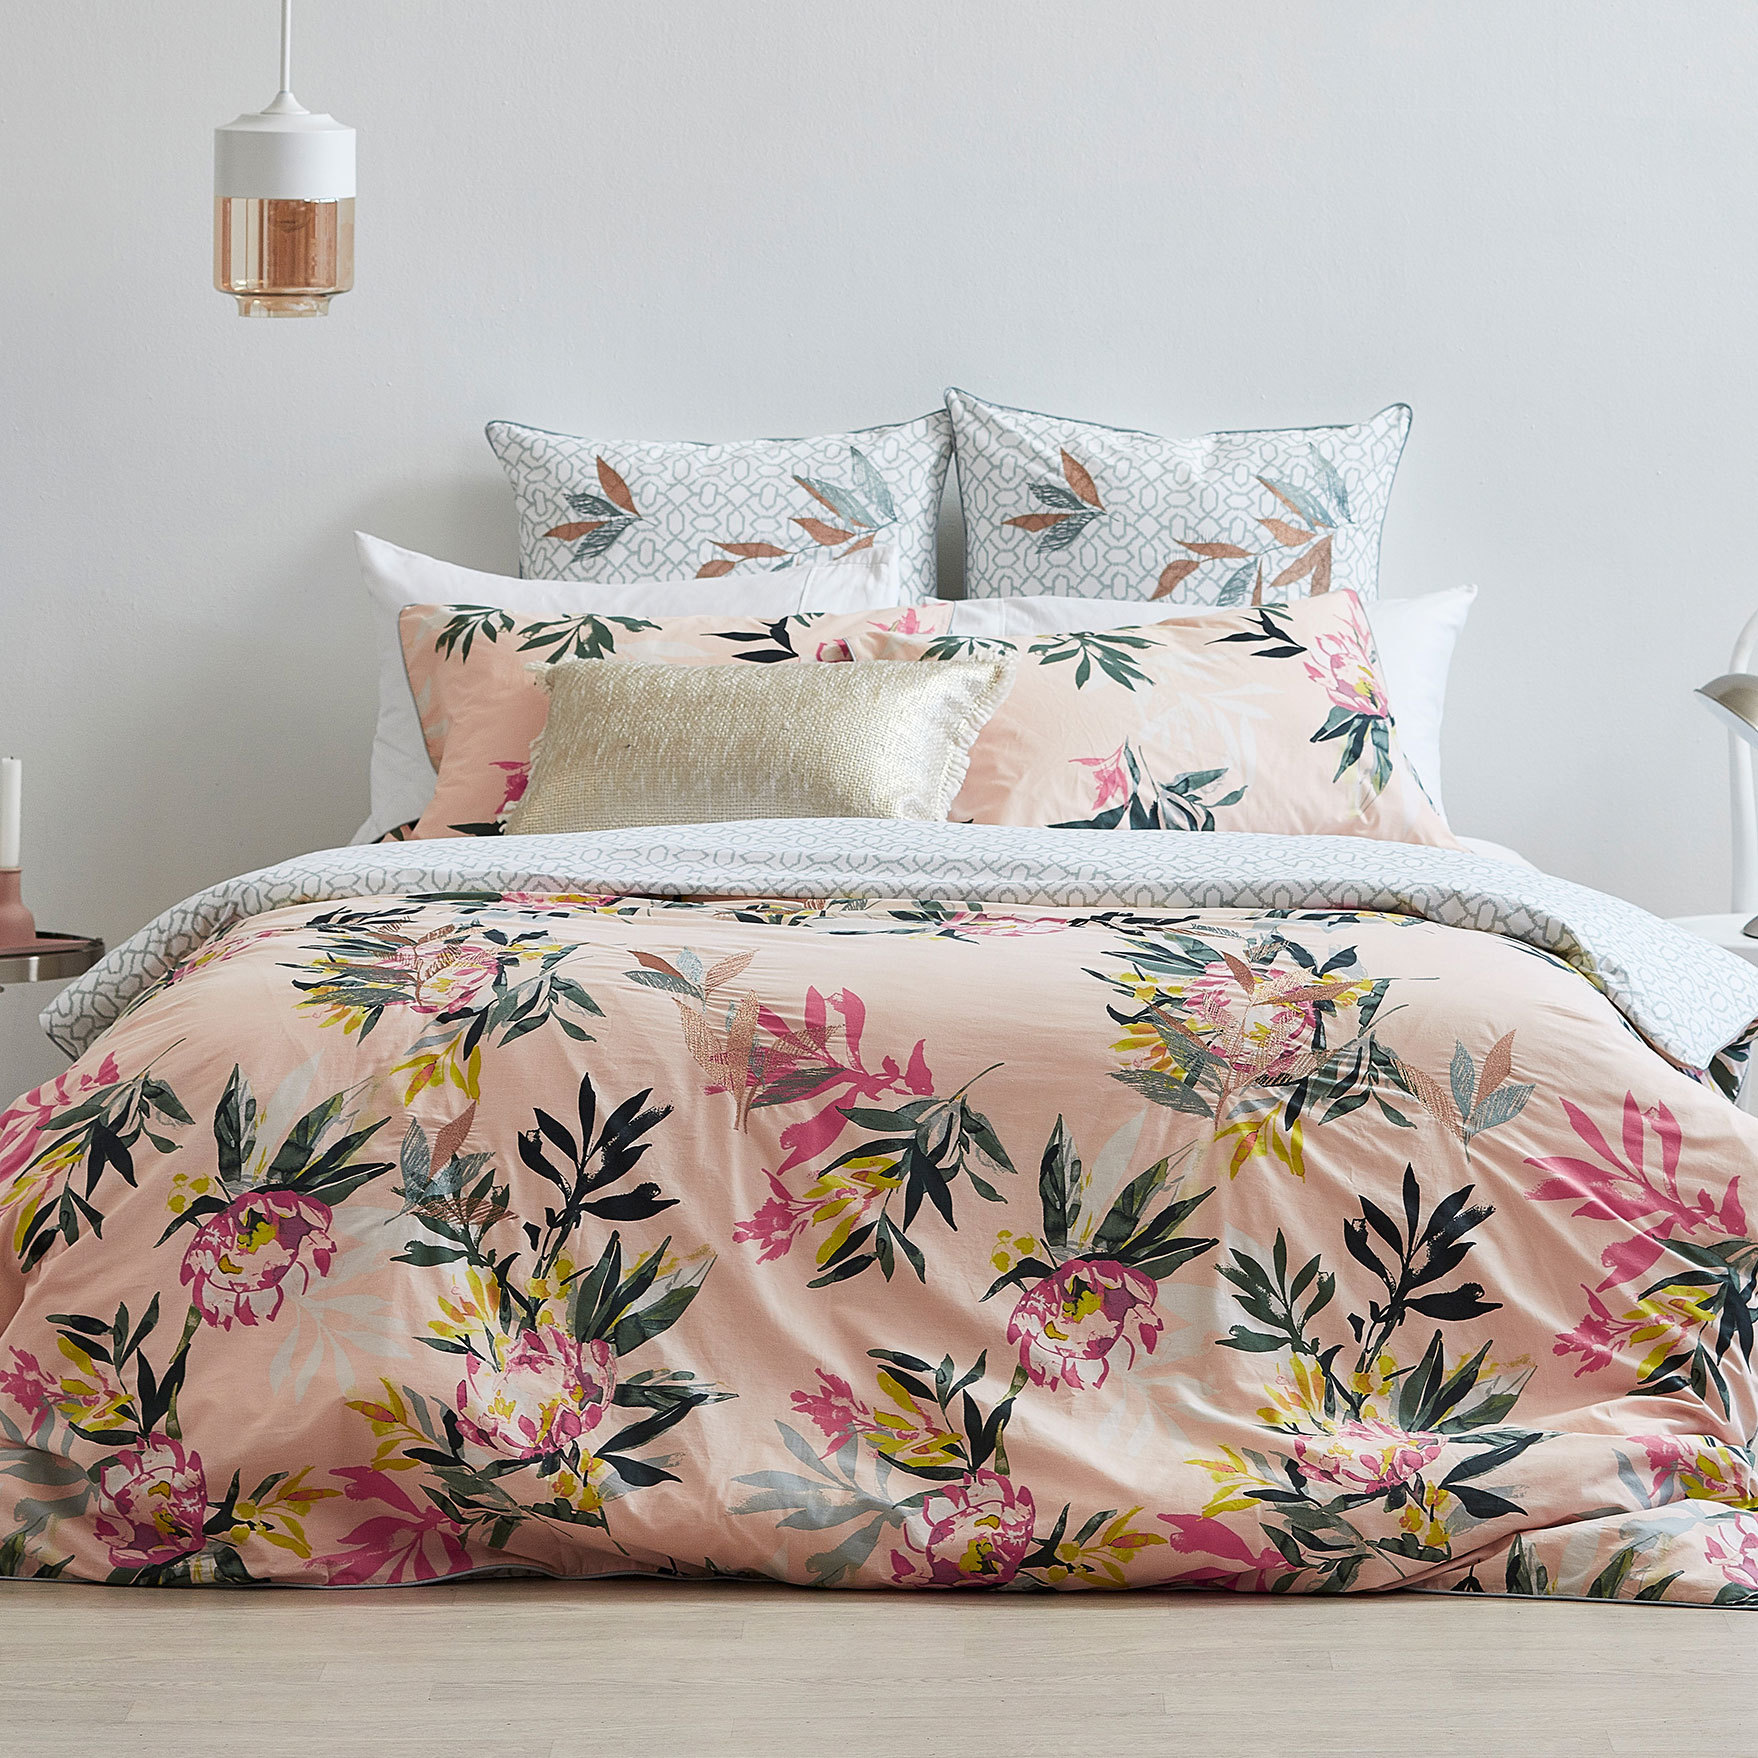 print piece country collections bed bedding cotton store floral set with flowers cover rustic winlife on online american product sets duvet style